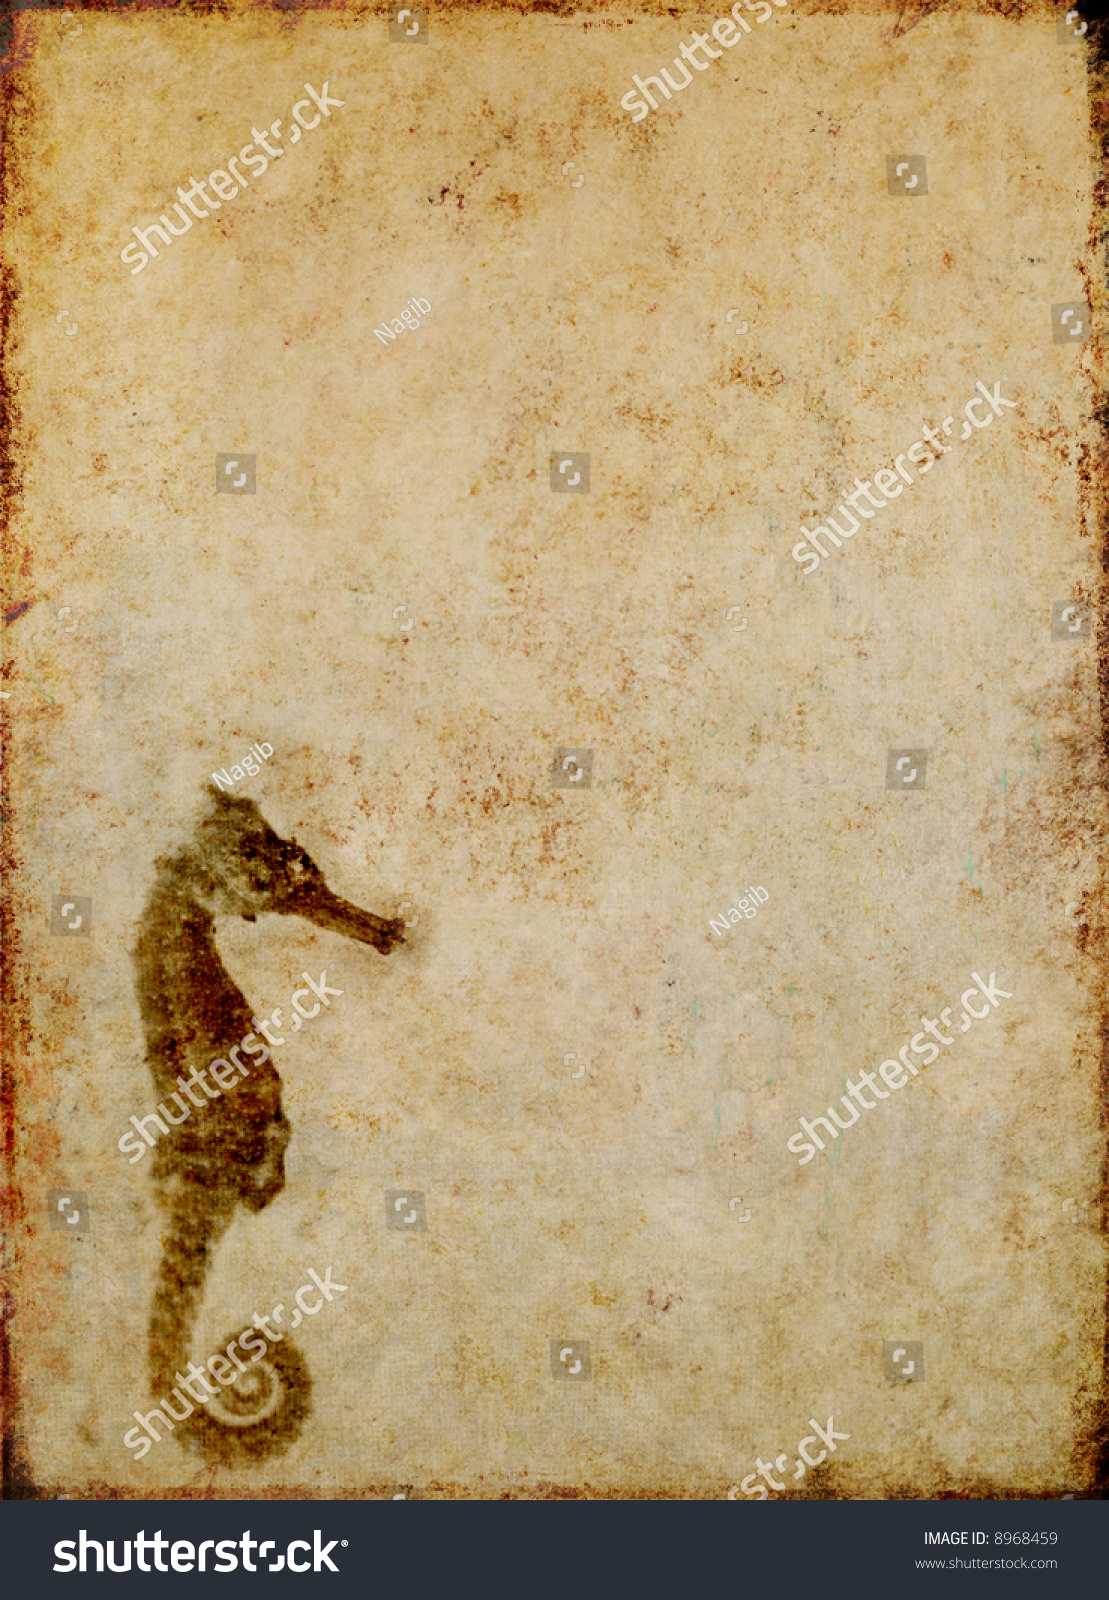 Brown Background Image With Interesting Texture, Close-Up ... - photo#5